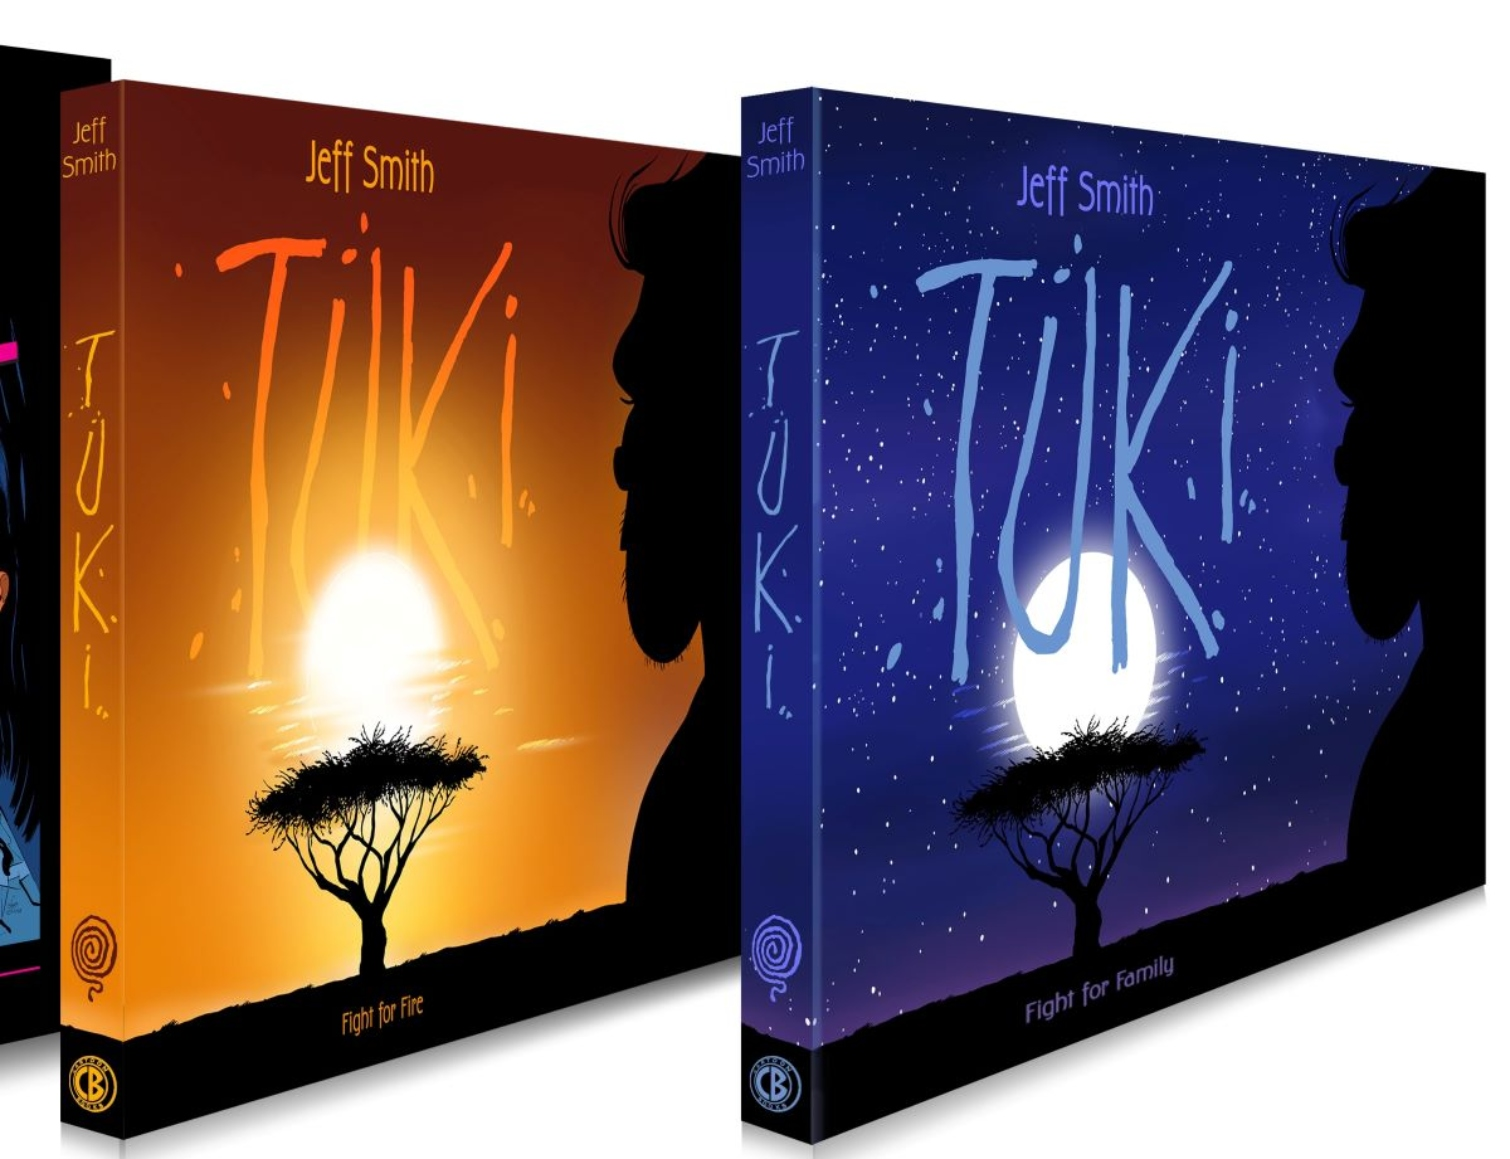 A story 2 million years in the making: Jeff Smith on creating 'Tuki'